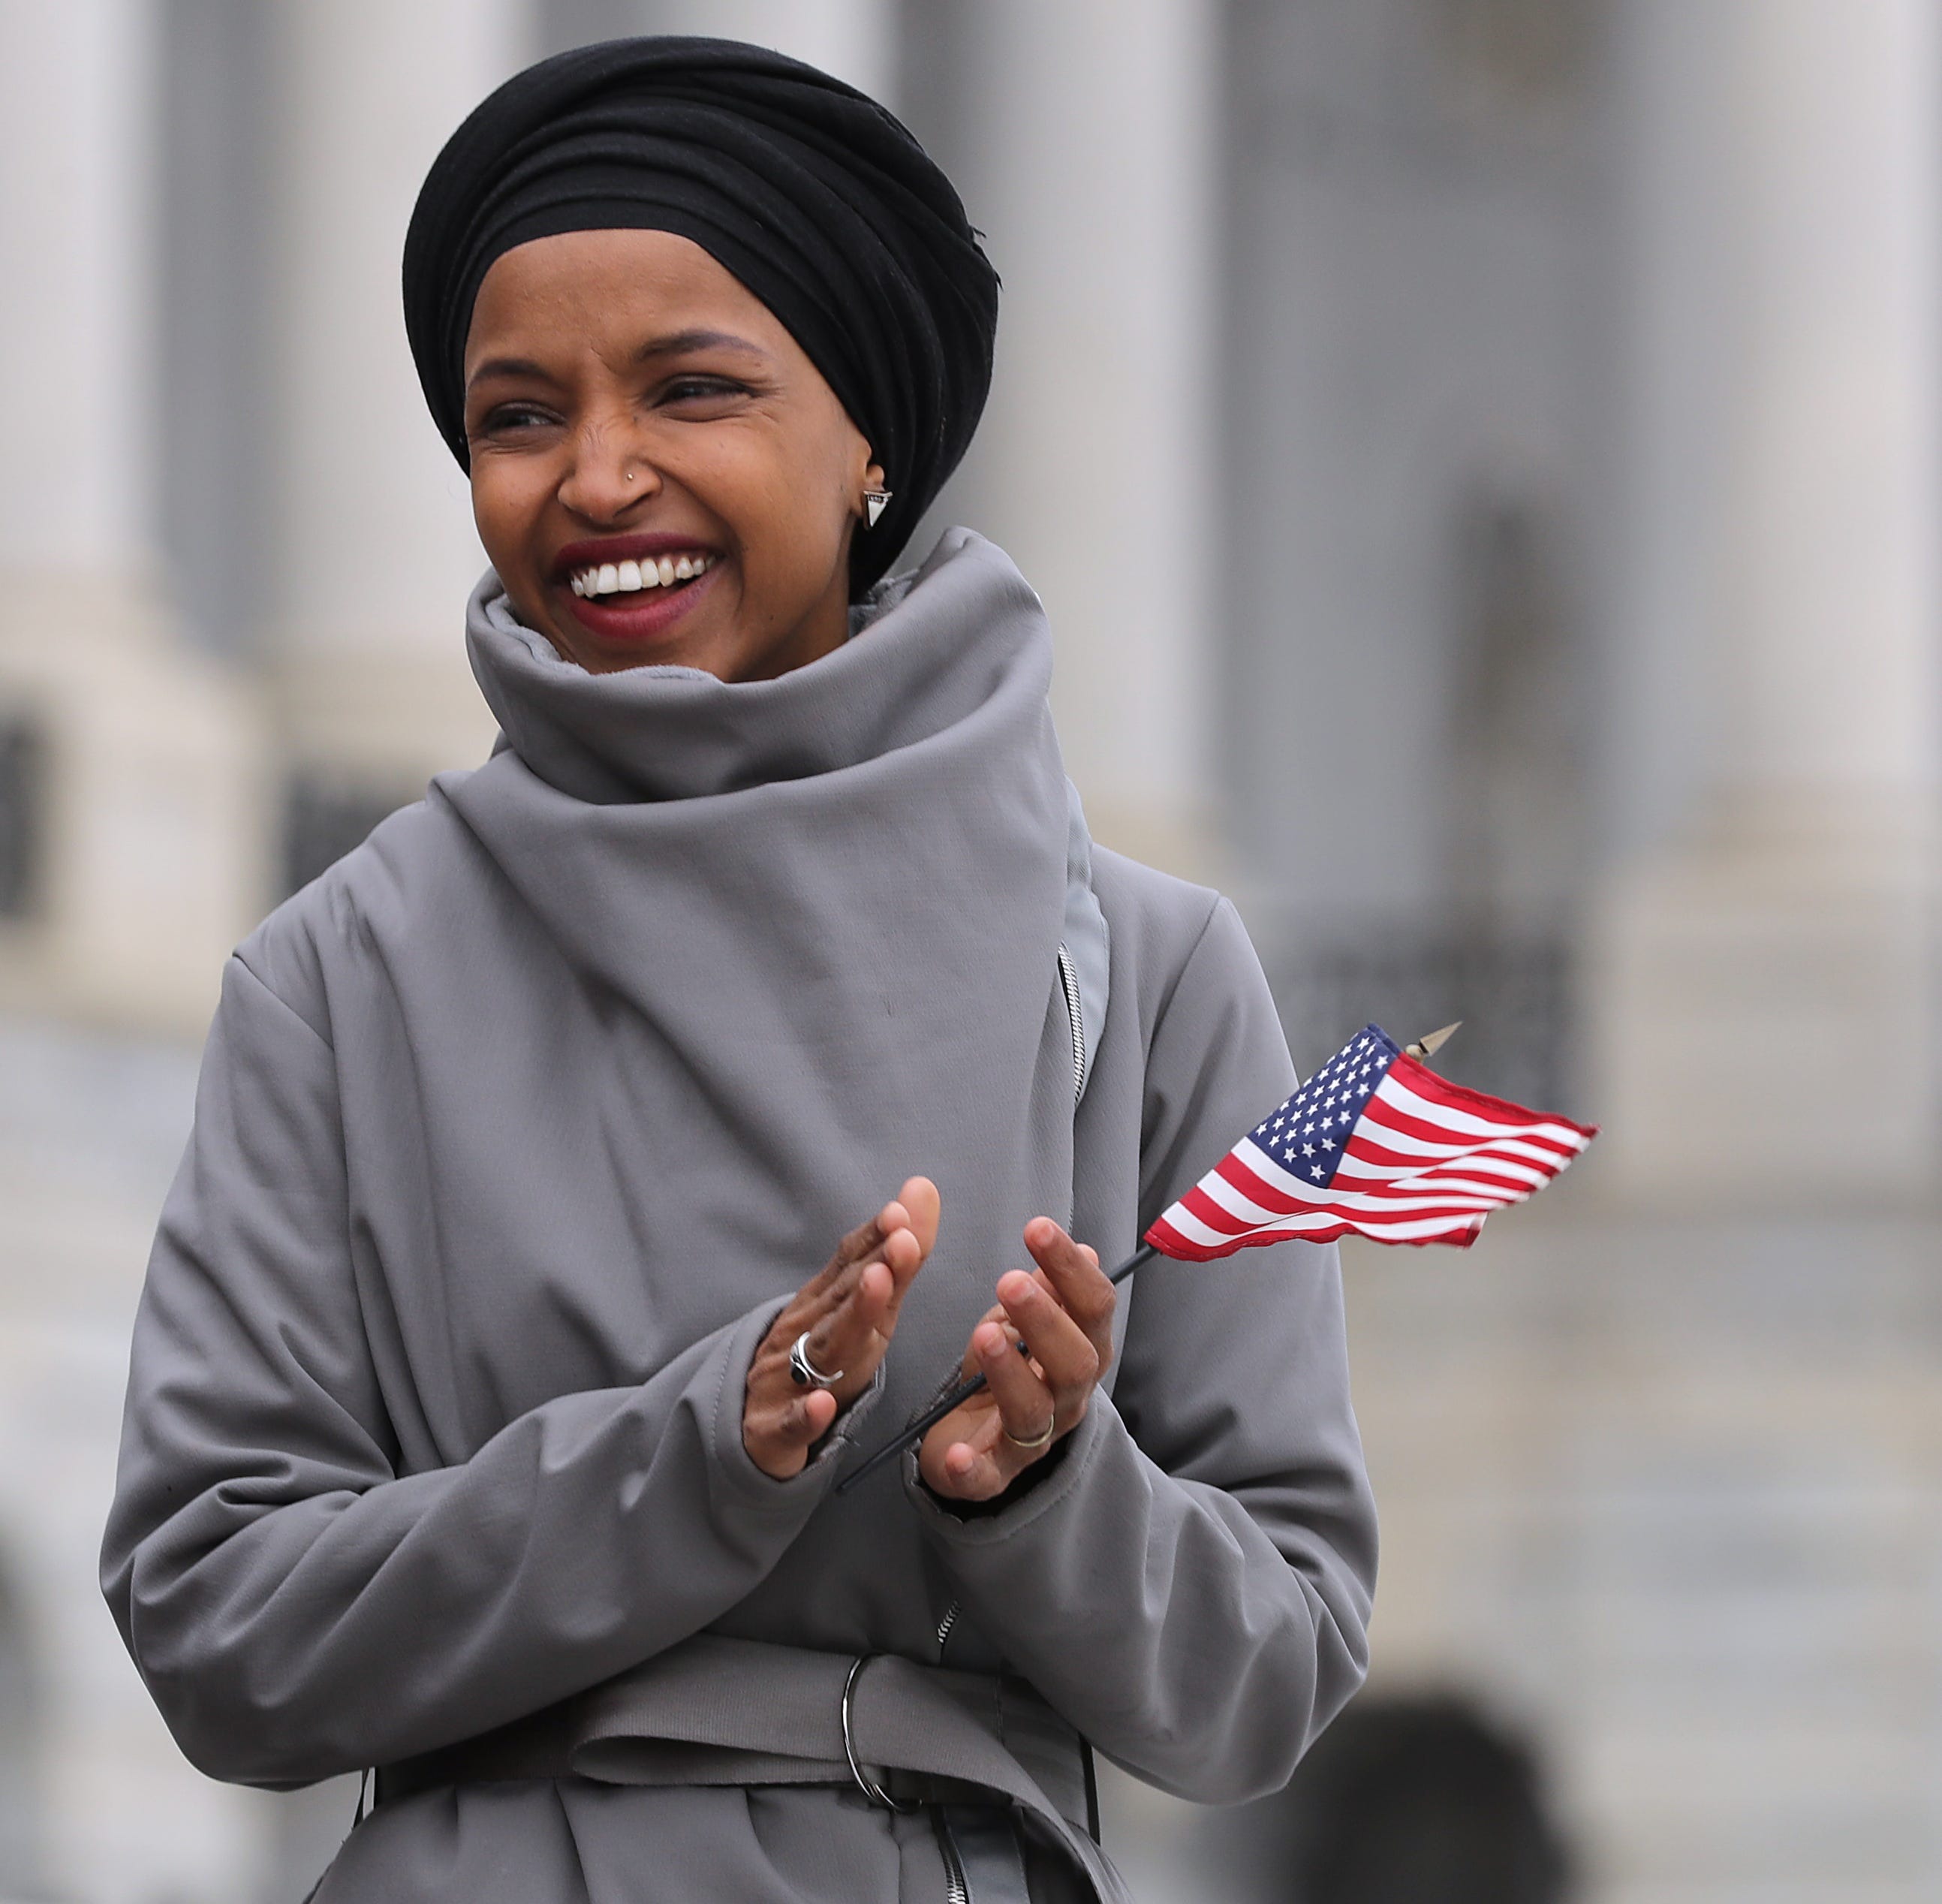 Steuben County man charged with threatening to kill US Rep. Omar of Minnesota